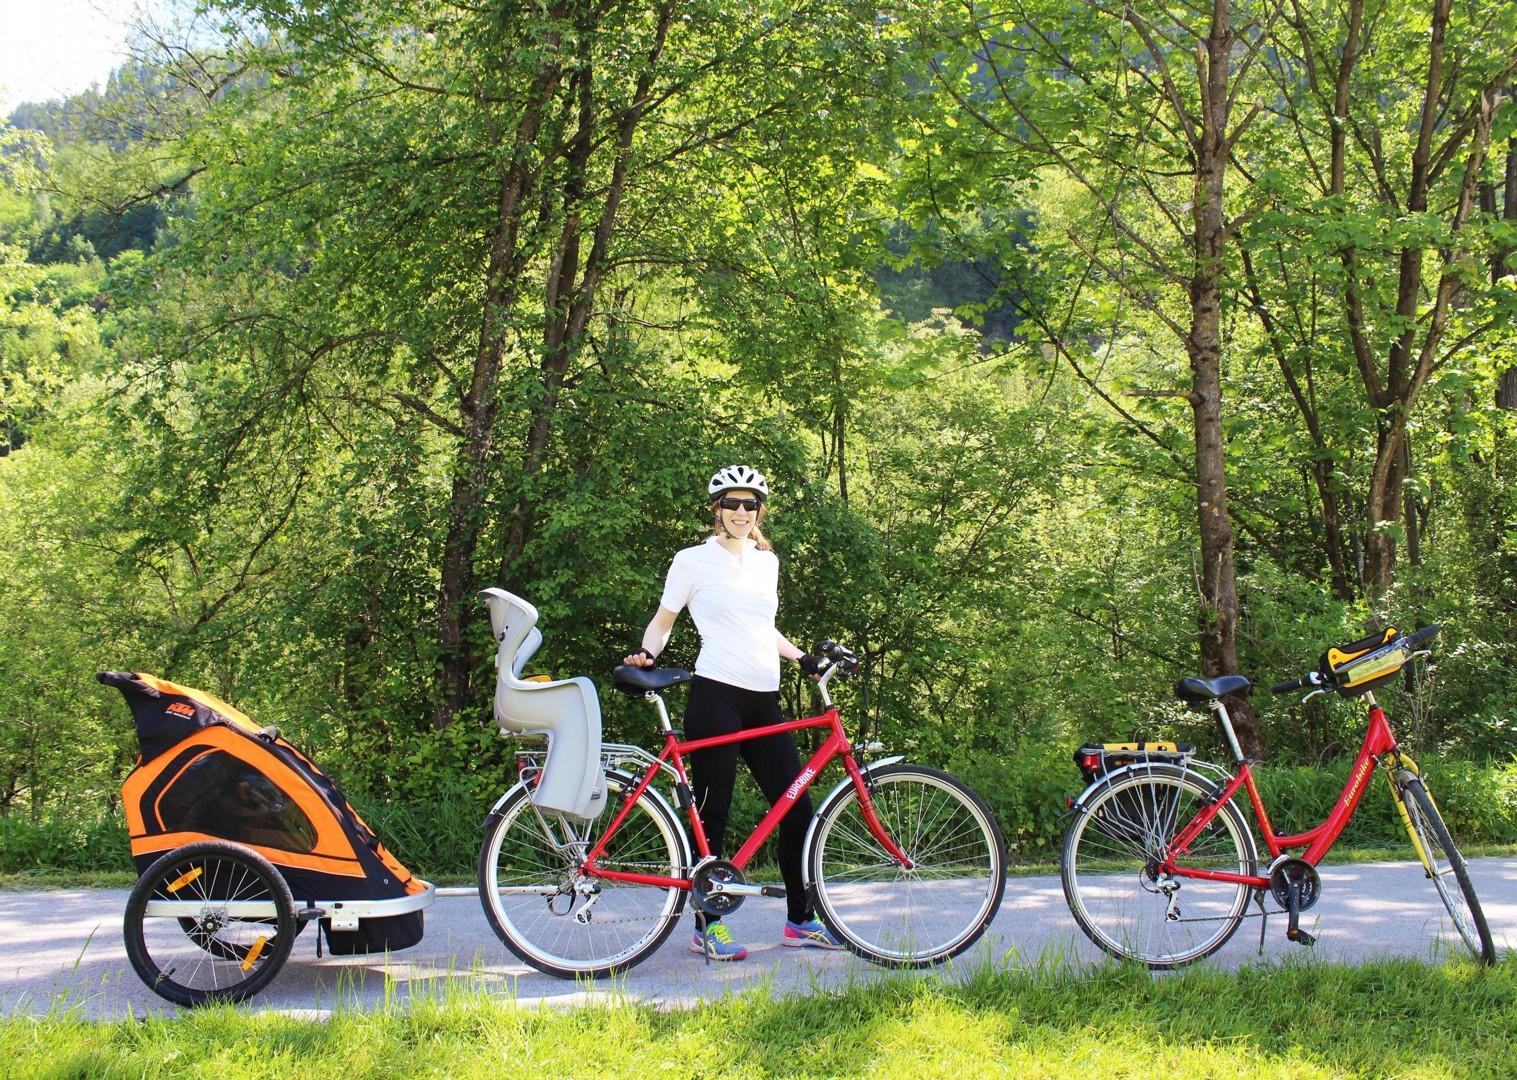 cycling-for-all-the-family-children-bikes-austria-tauern-valleys.jpg - NEW! Austria - Tauern Valleys - Self-Guided Family Cycling Holiday - Family Cycling